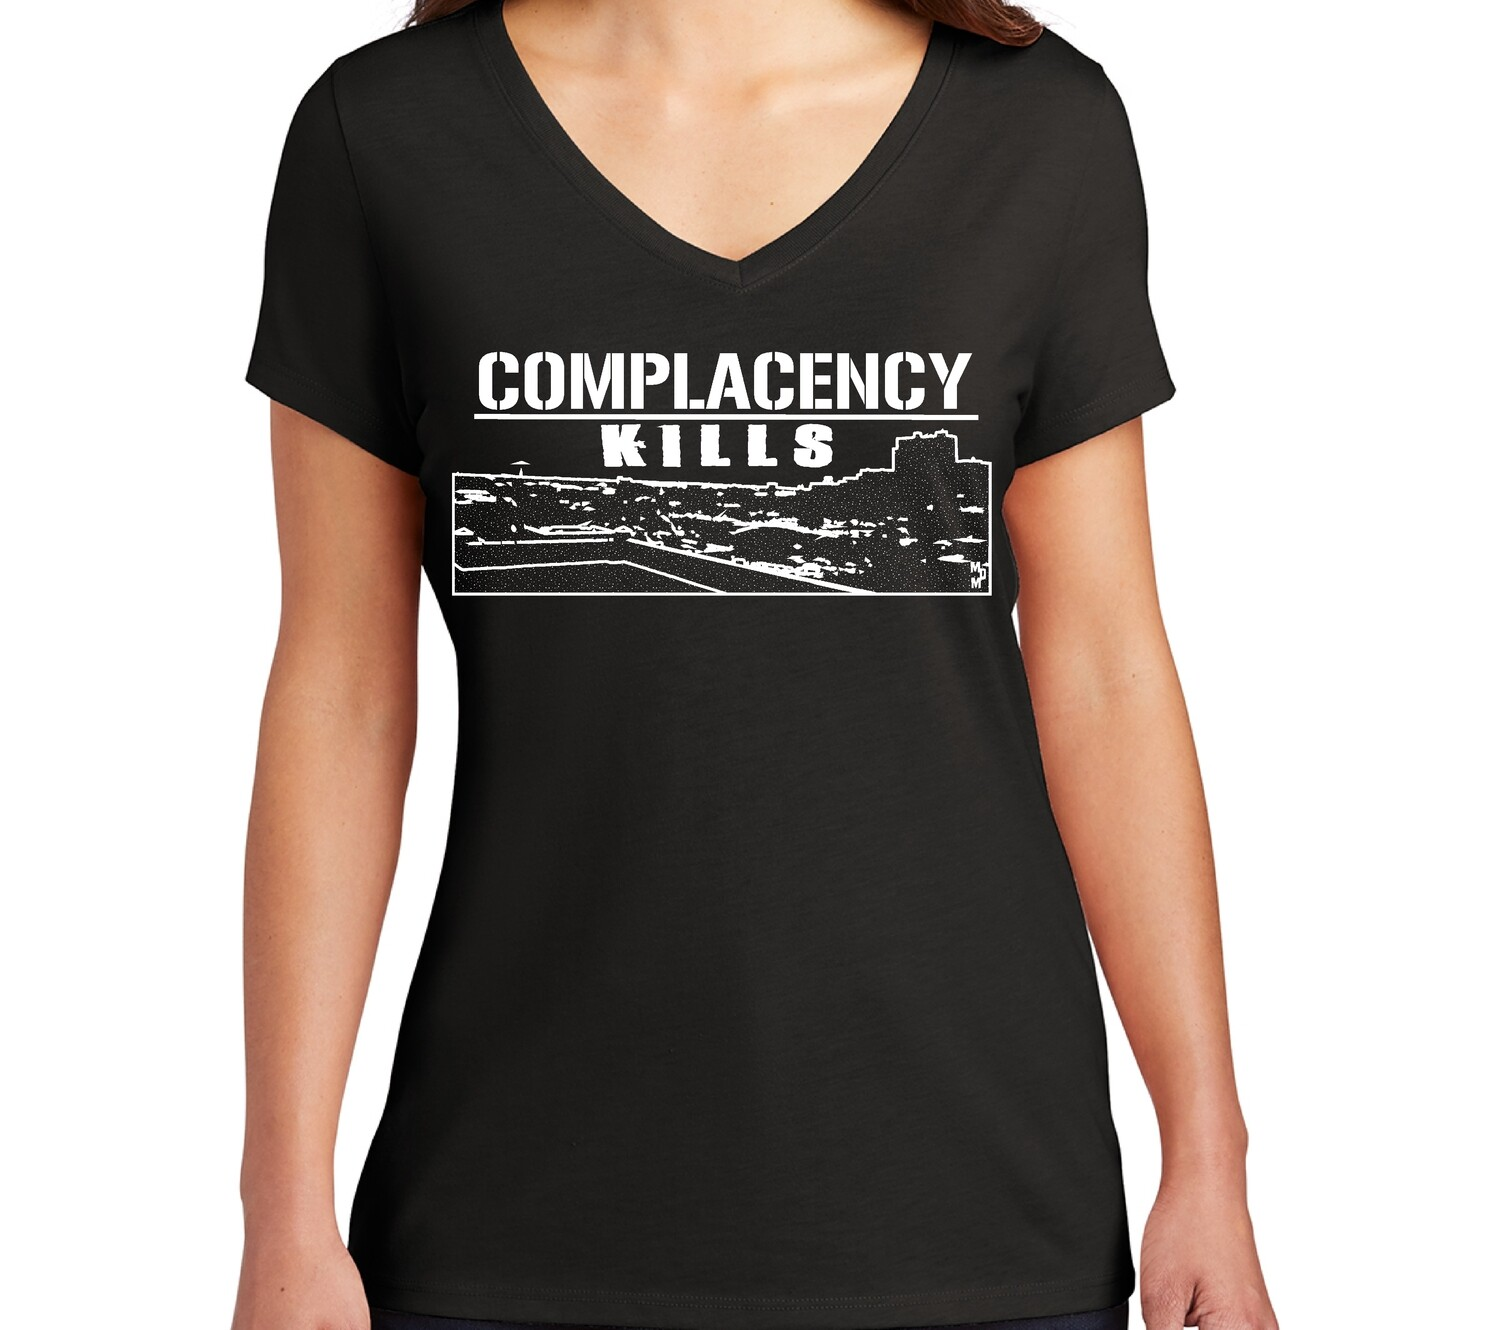 Complacency kills 2.0  Women's V neck